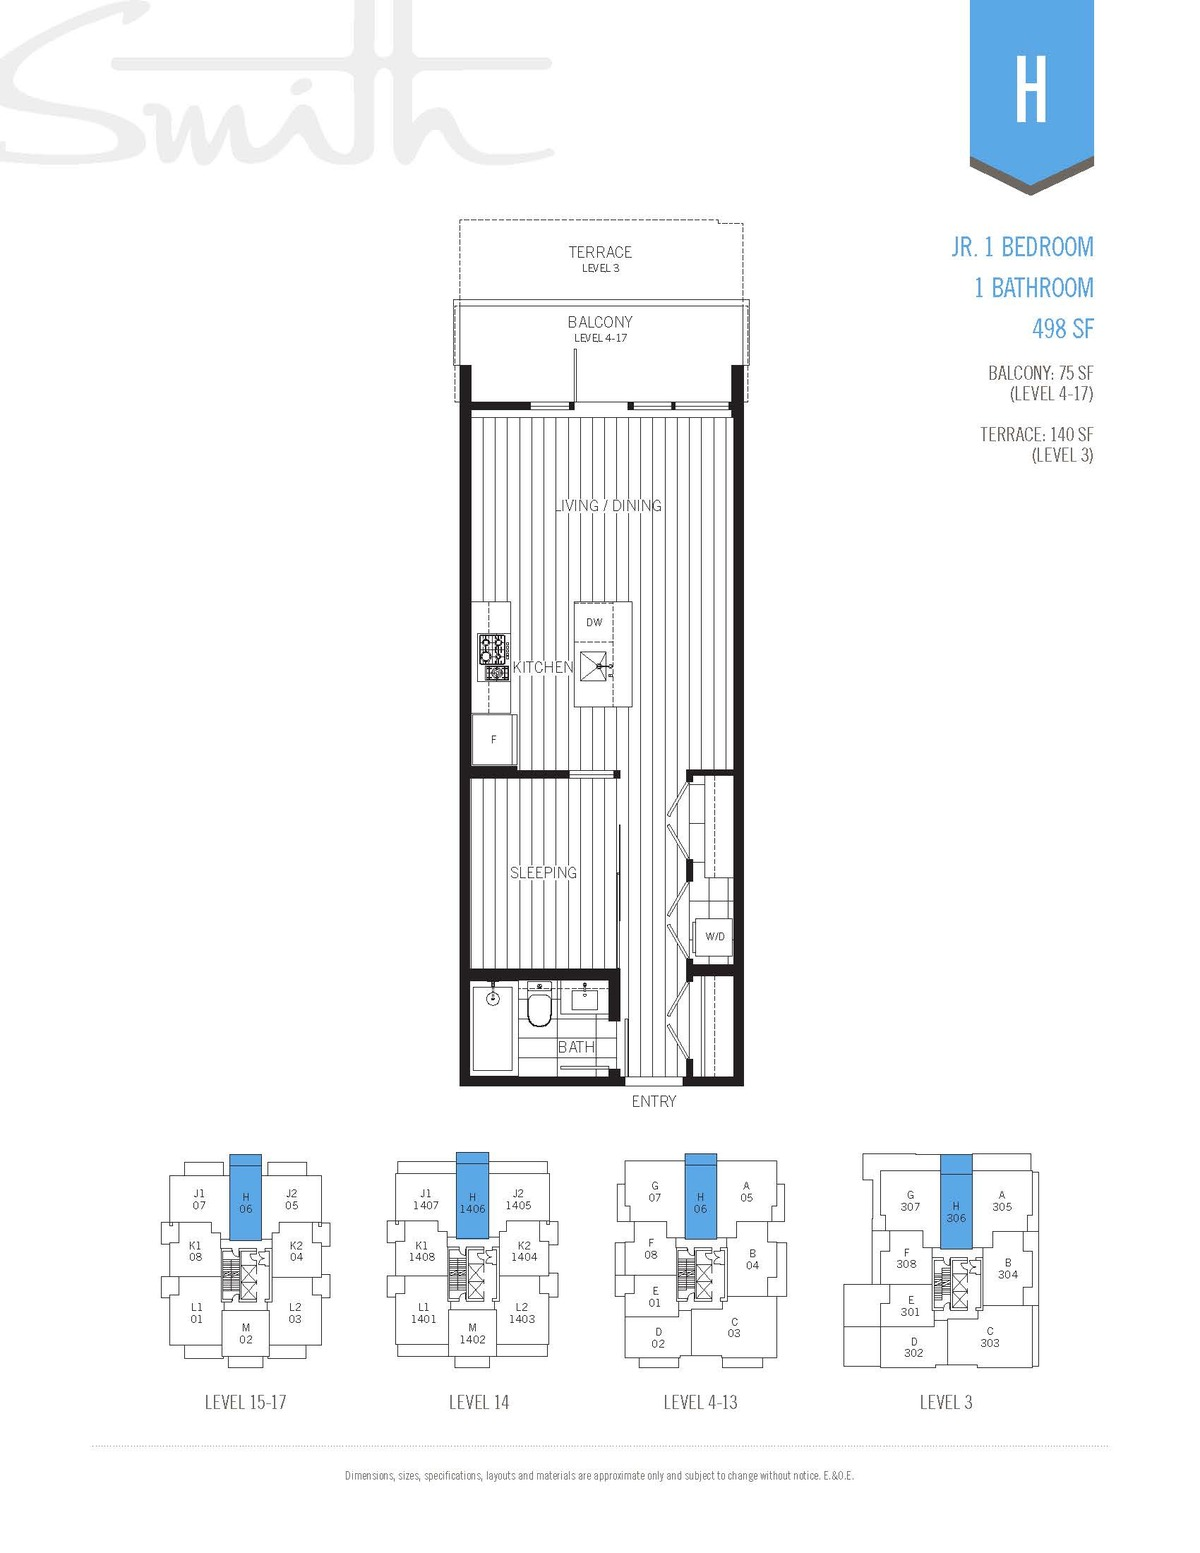 Smith Floorplan H